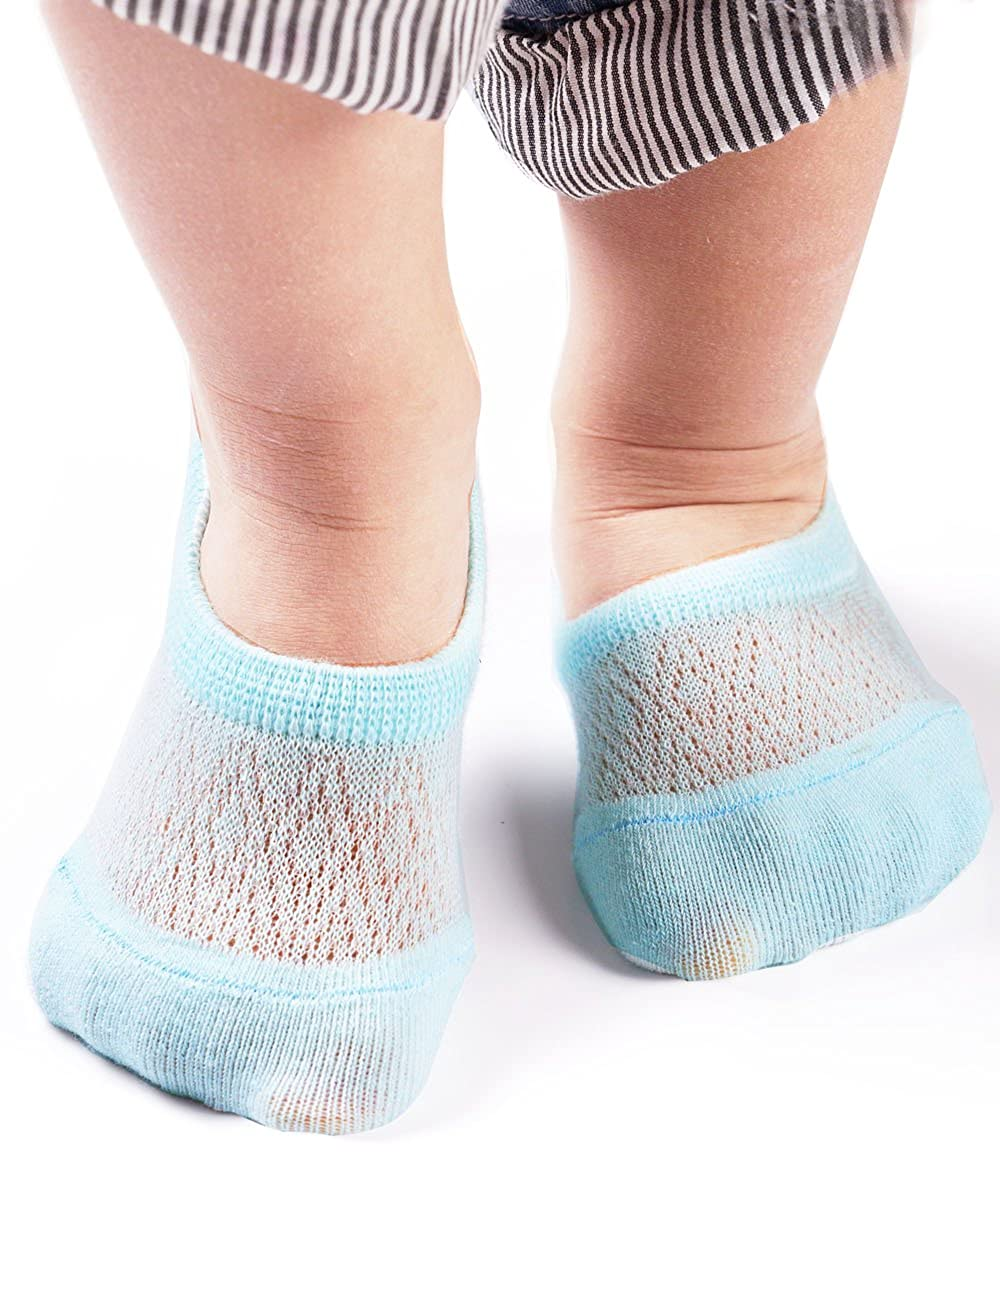 BabaMate 6 Pairs Baby No Show Socks - Soft Cotton Ideal for Spring Summer